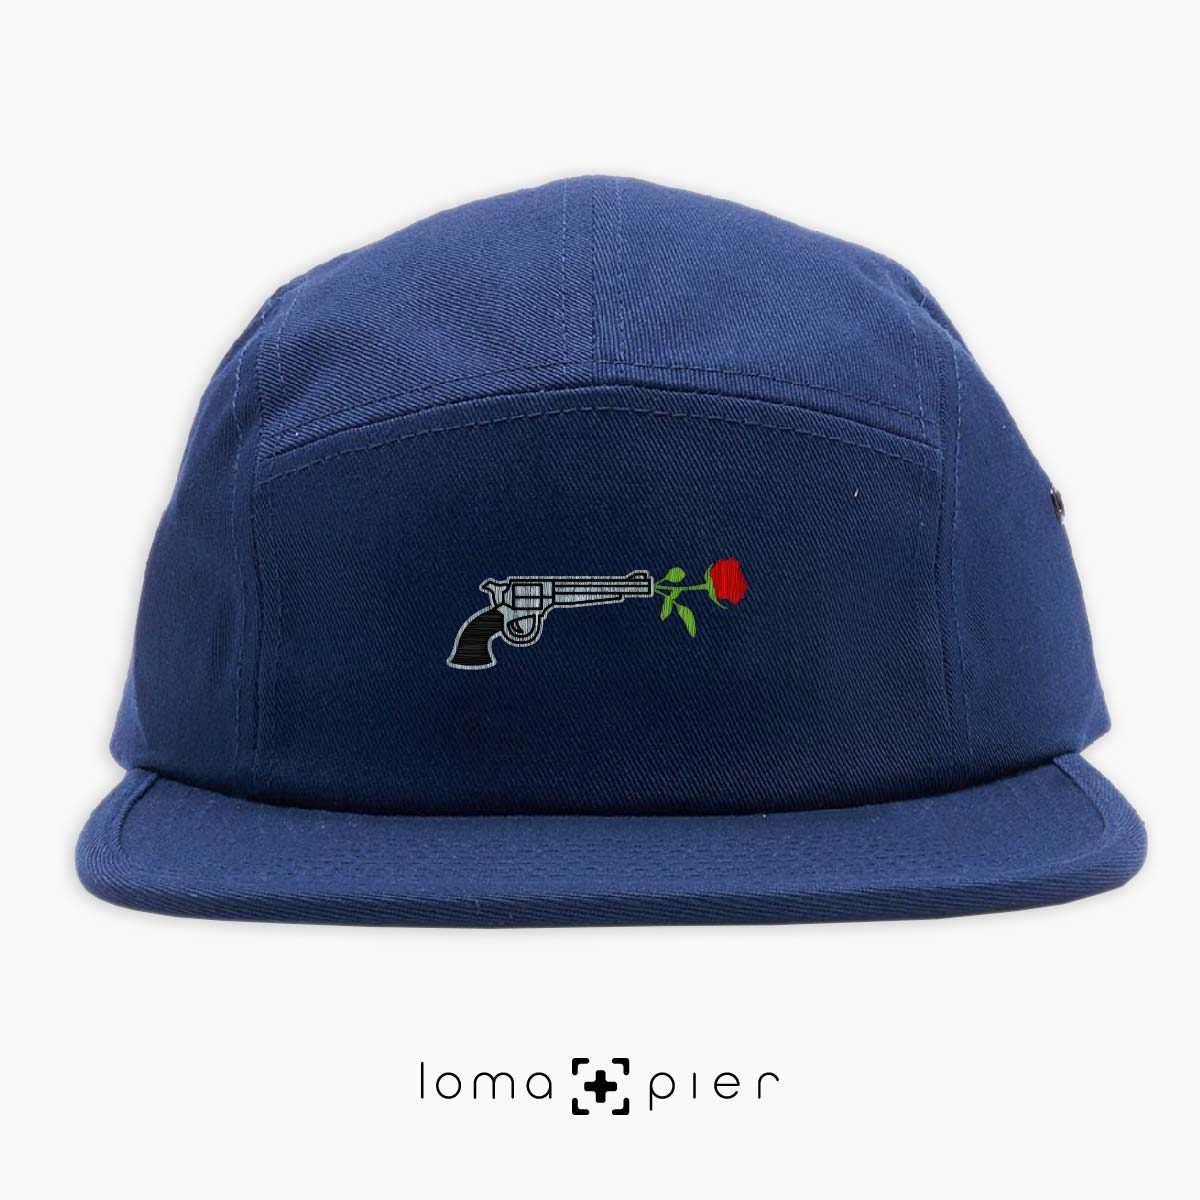 ROSE REVOLVER icon embroidered on a navy blue cotton 5-panel hat with multicolor thread by loma+pier hat store